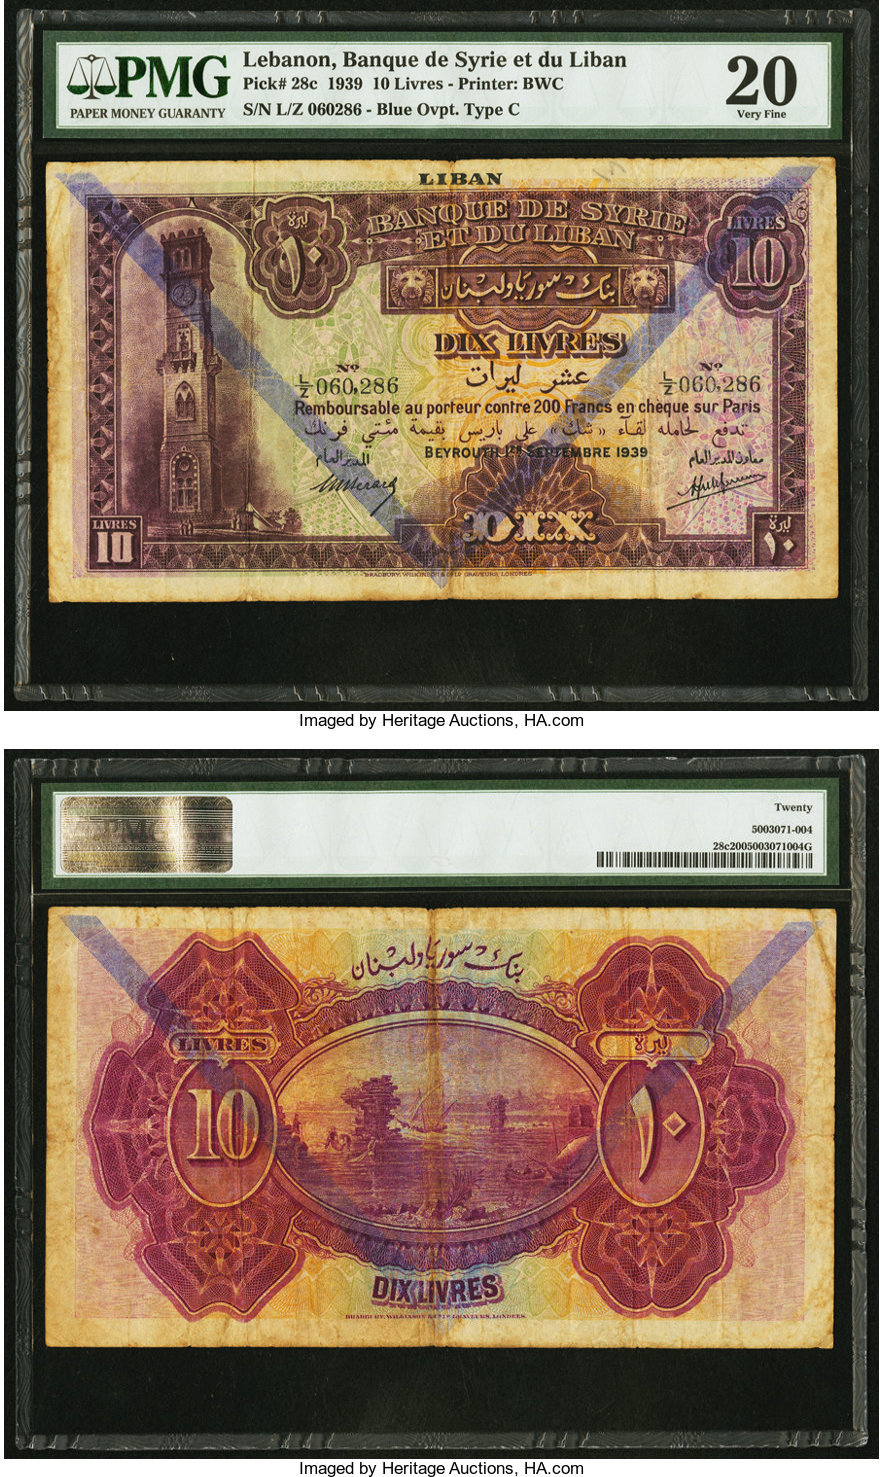 World Currency Lebanon Banque De Syrie Et Du Liban 10 Livres 1 9 1939 Pick 28c Pmg Very Fine 20 An Evenly Circulated